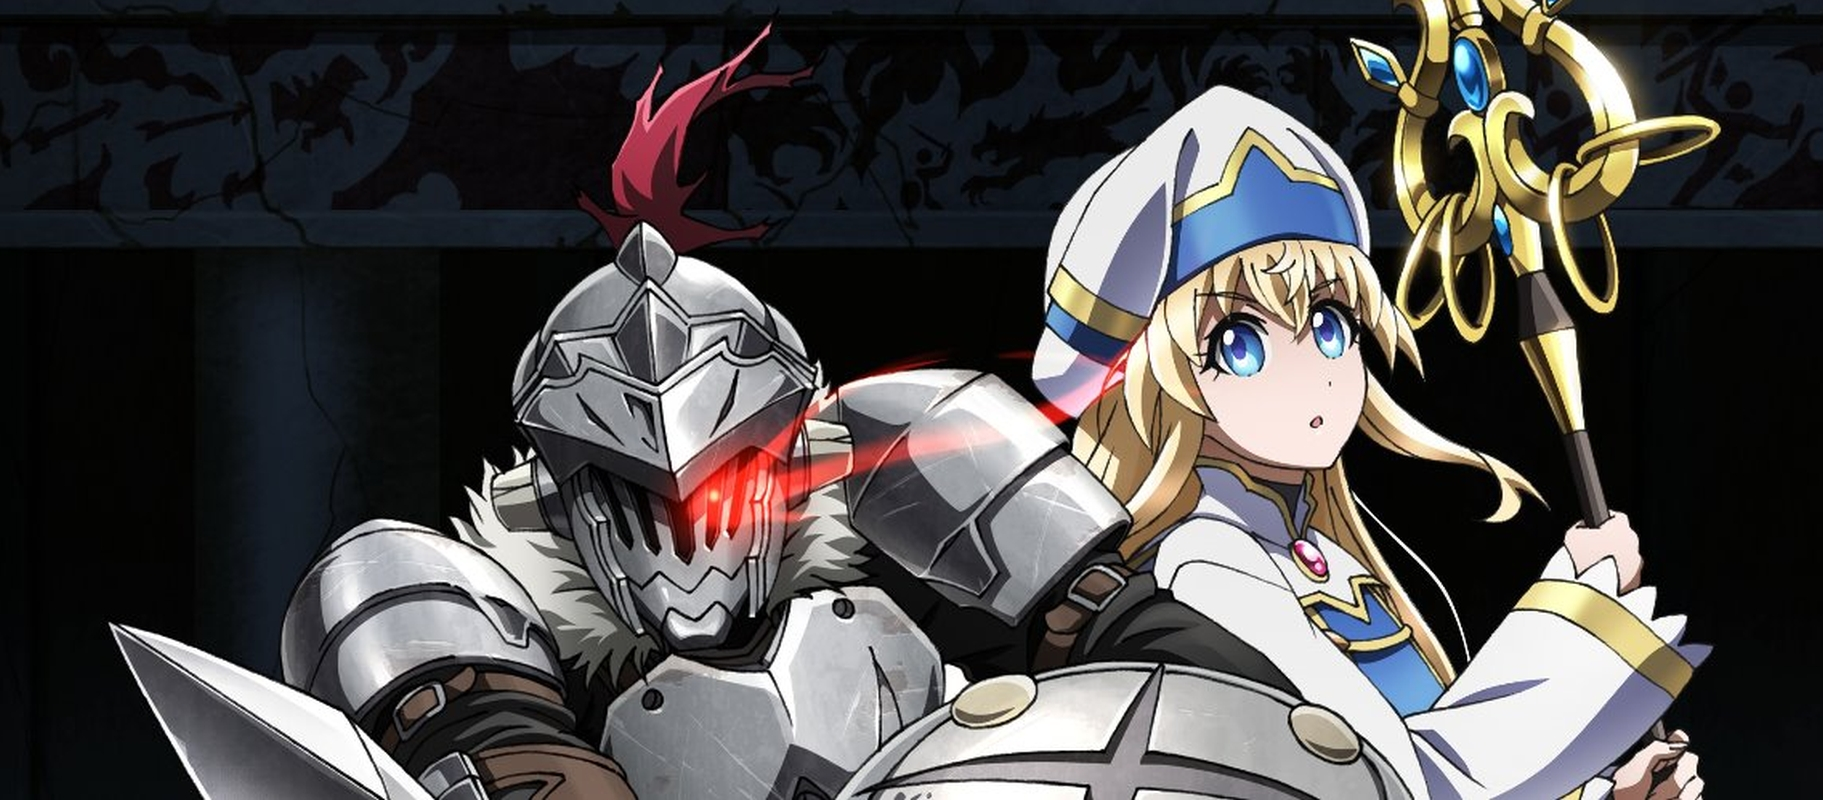 Goblin Slayer: The Endless Revenge Mobile Game To Include New Characters And More